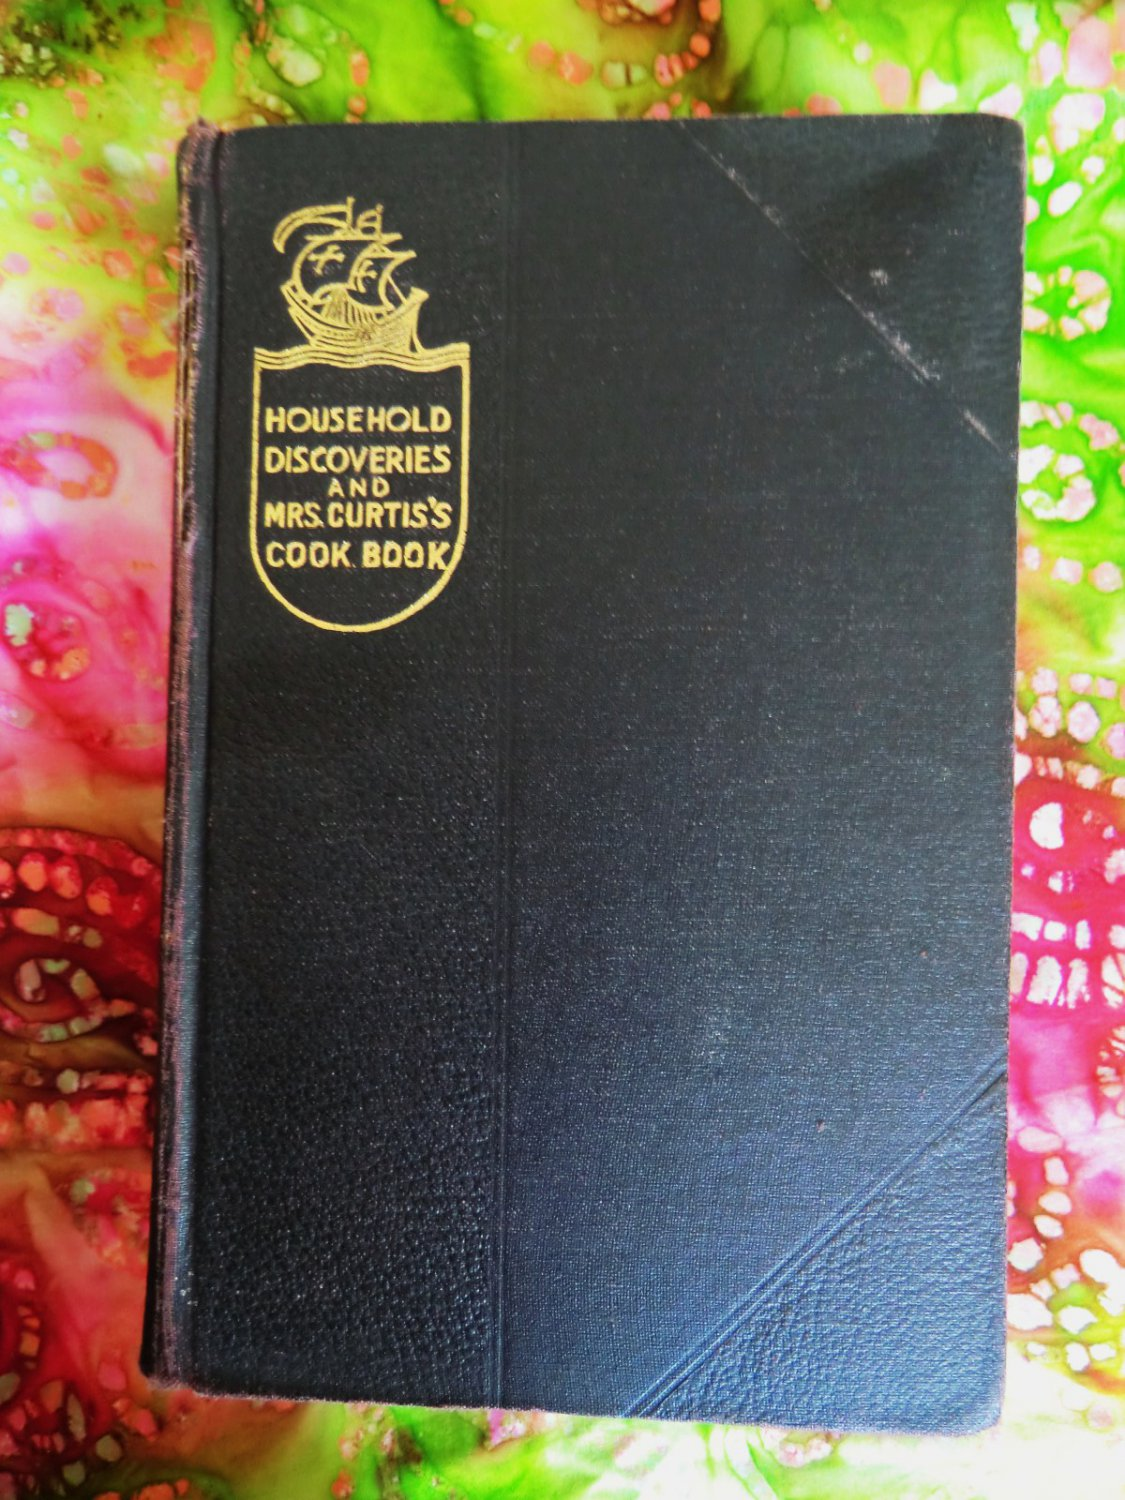 SOLD! Antique Household Discoveries and Mrs Curtis's Cookbook Vintage 1909